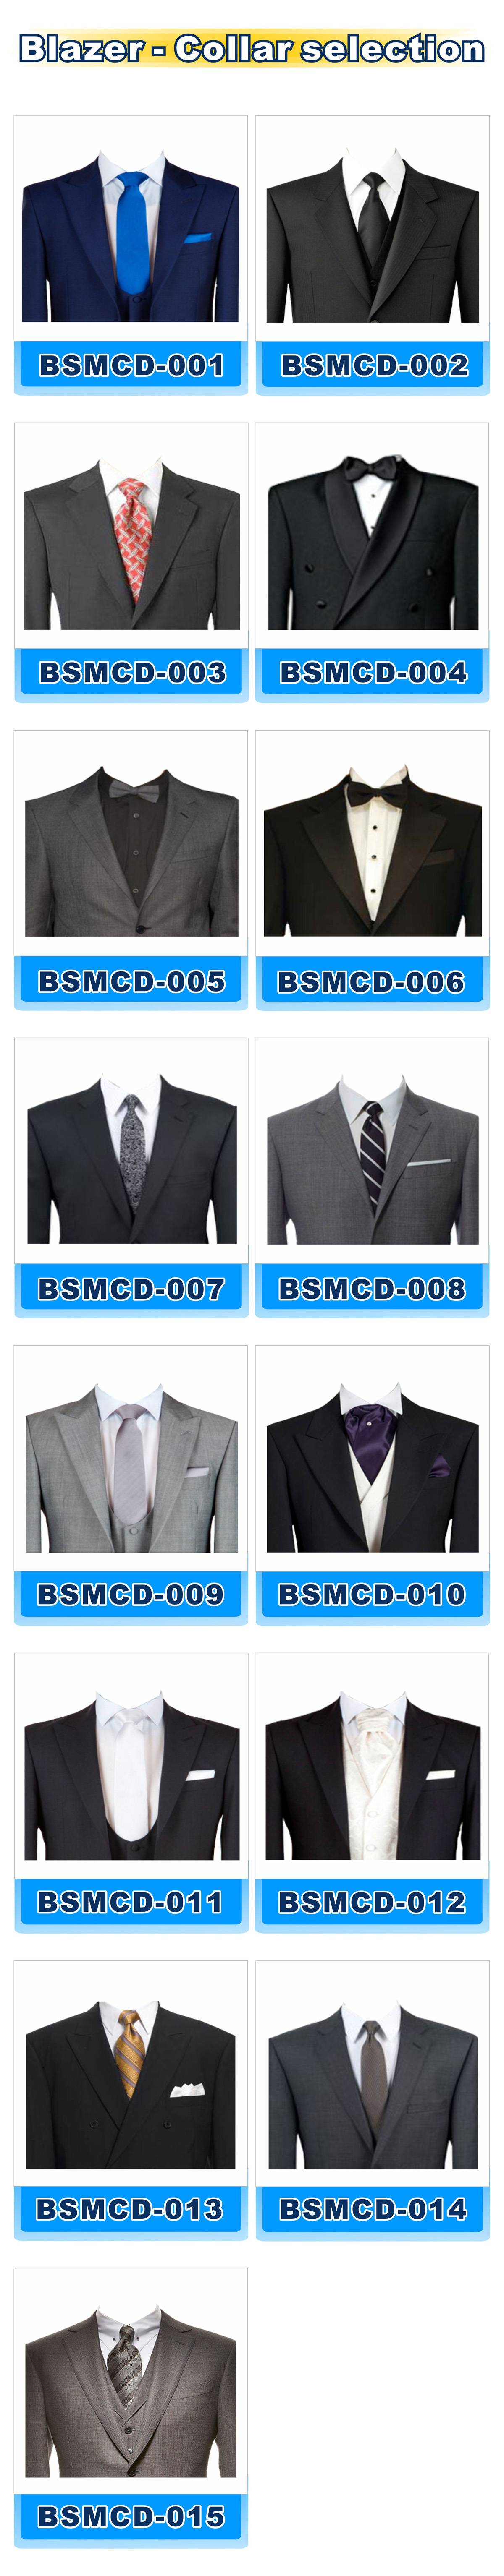 Blazer-collar selection